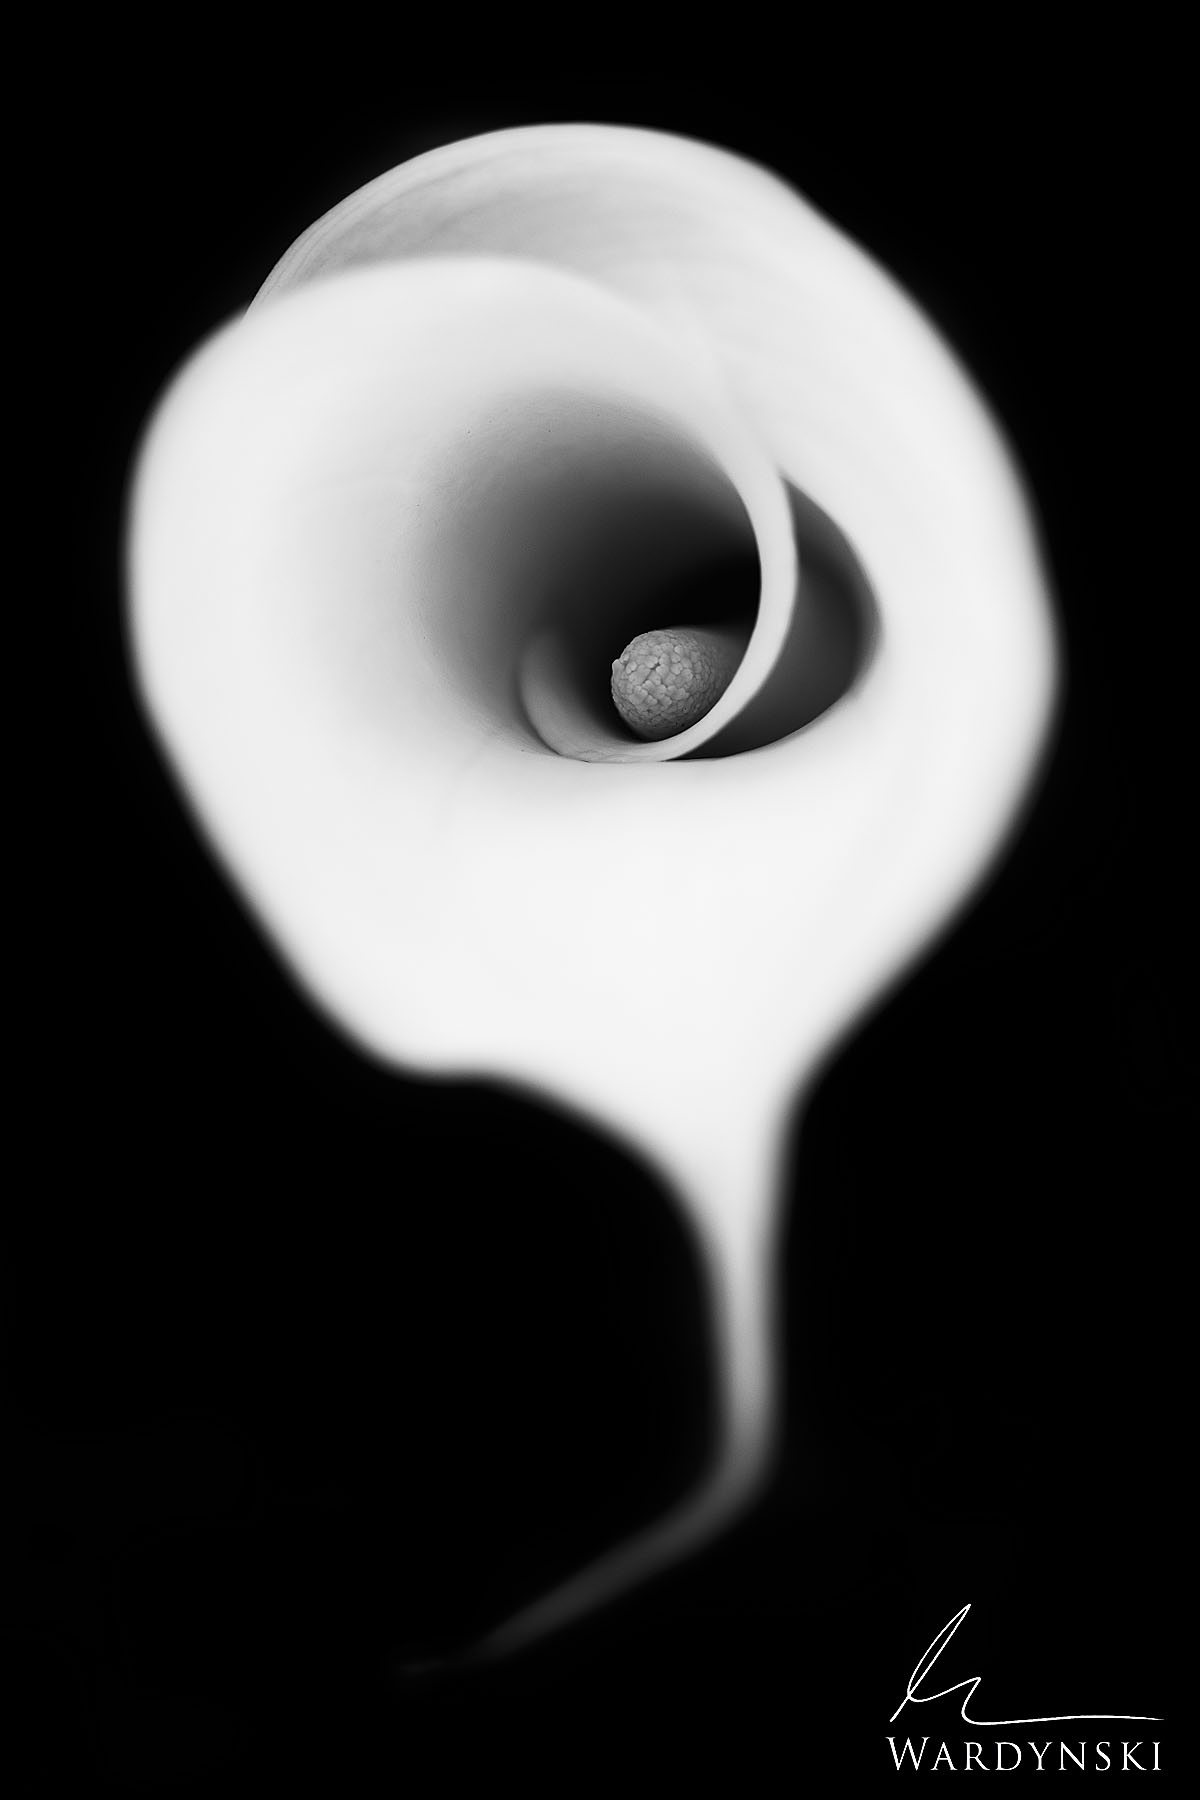 Black and White Fine Art Print | Limited Edition of 100  The Cala Lily is one of the most beautiful and sensual flowers in the...